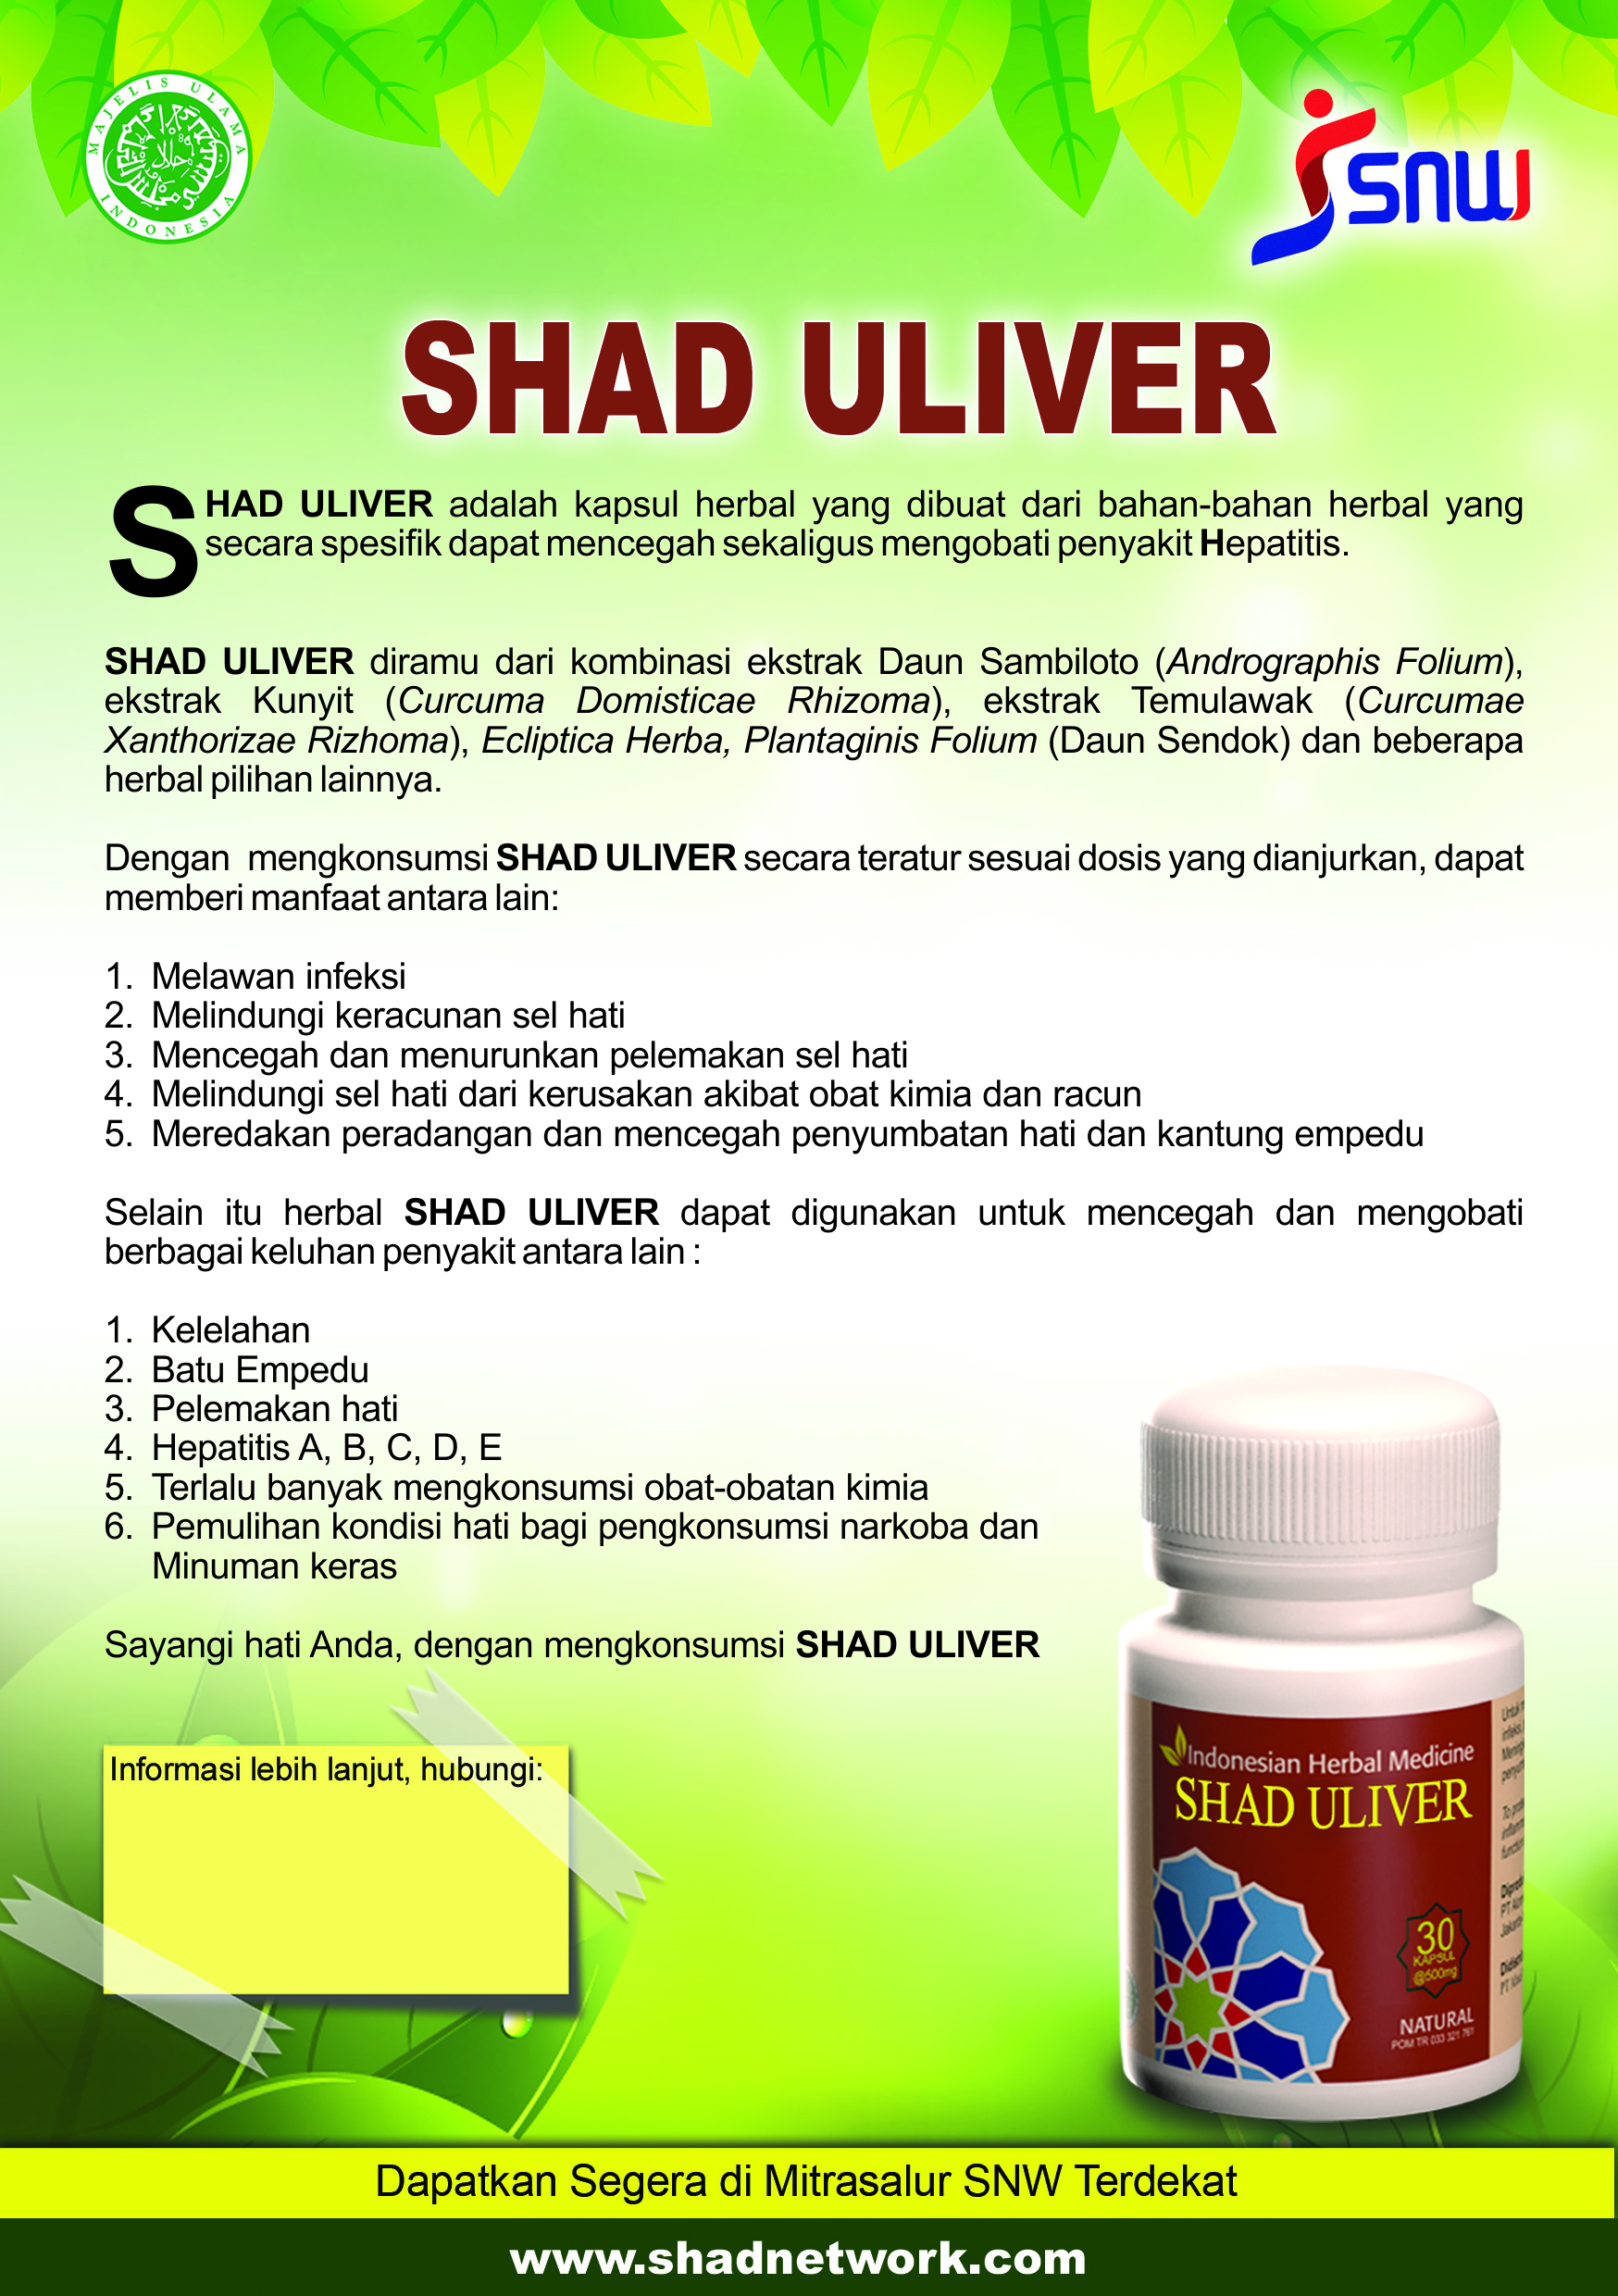 SNW Brosur SHADUliver